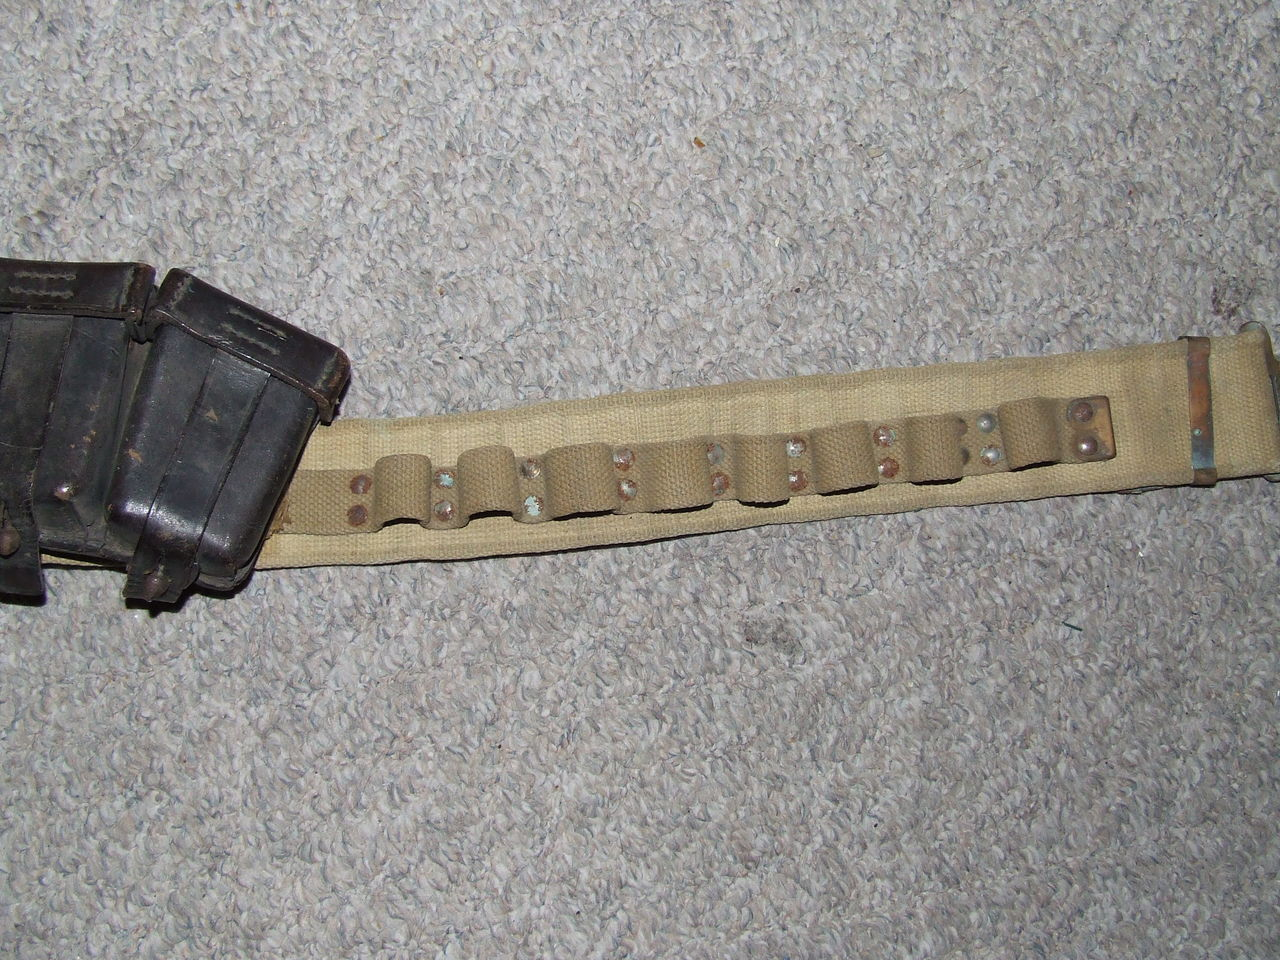 WW2 Canadian Airborne made paratroopers cartridge belt 004